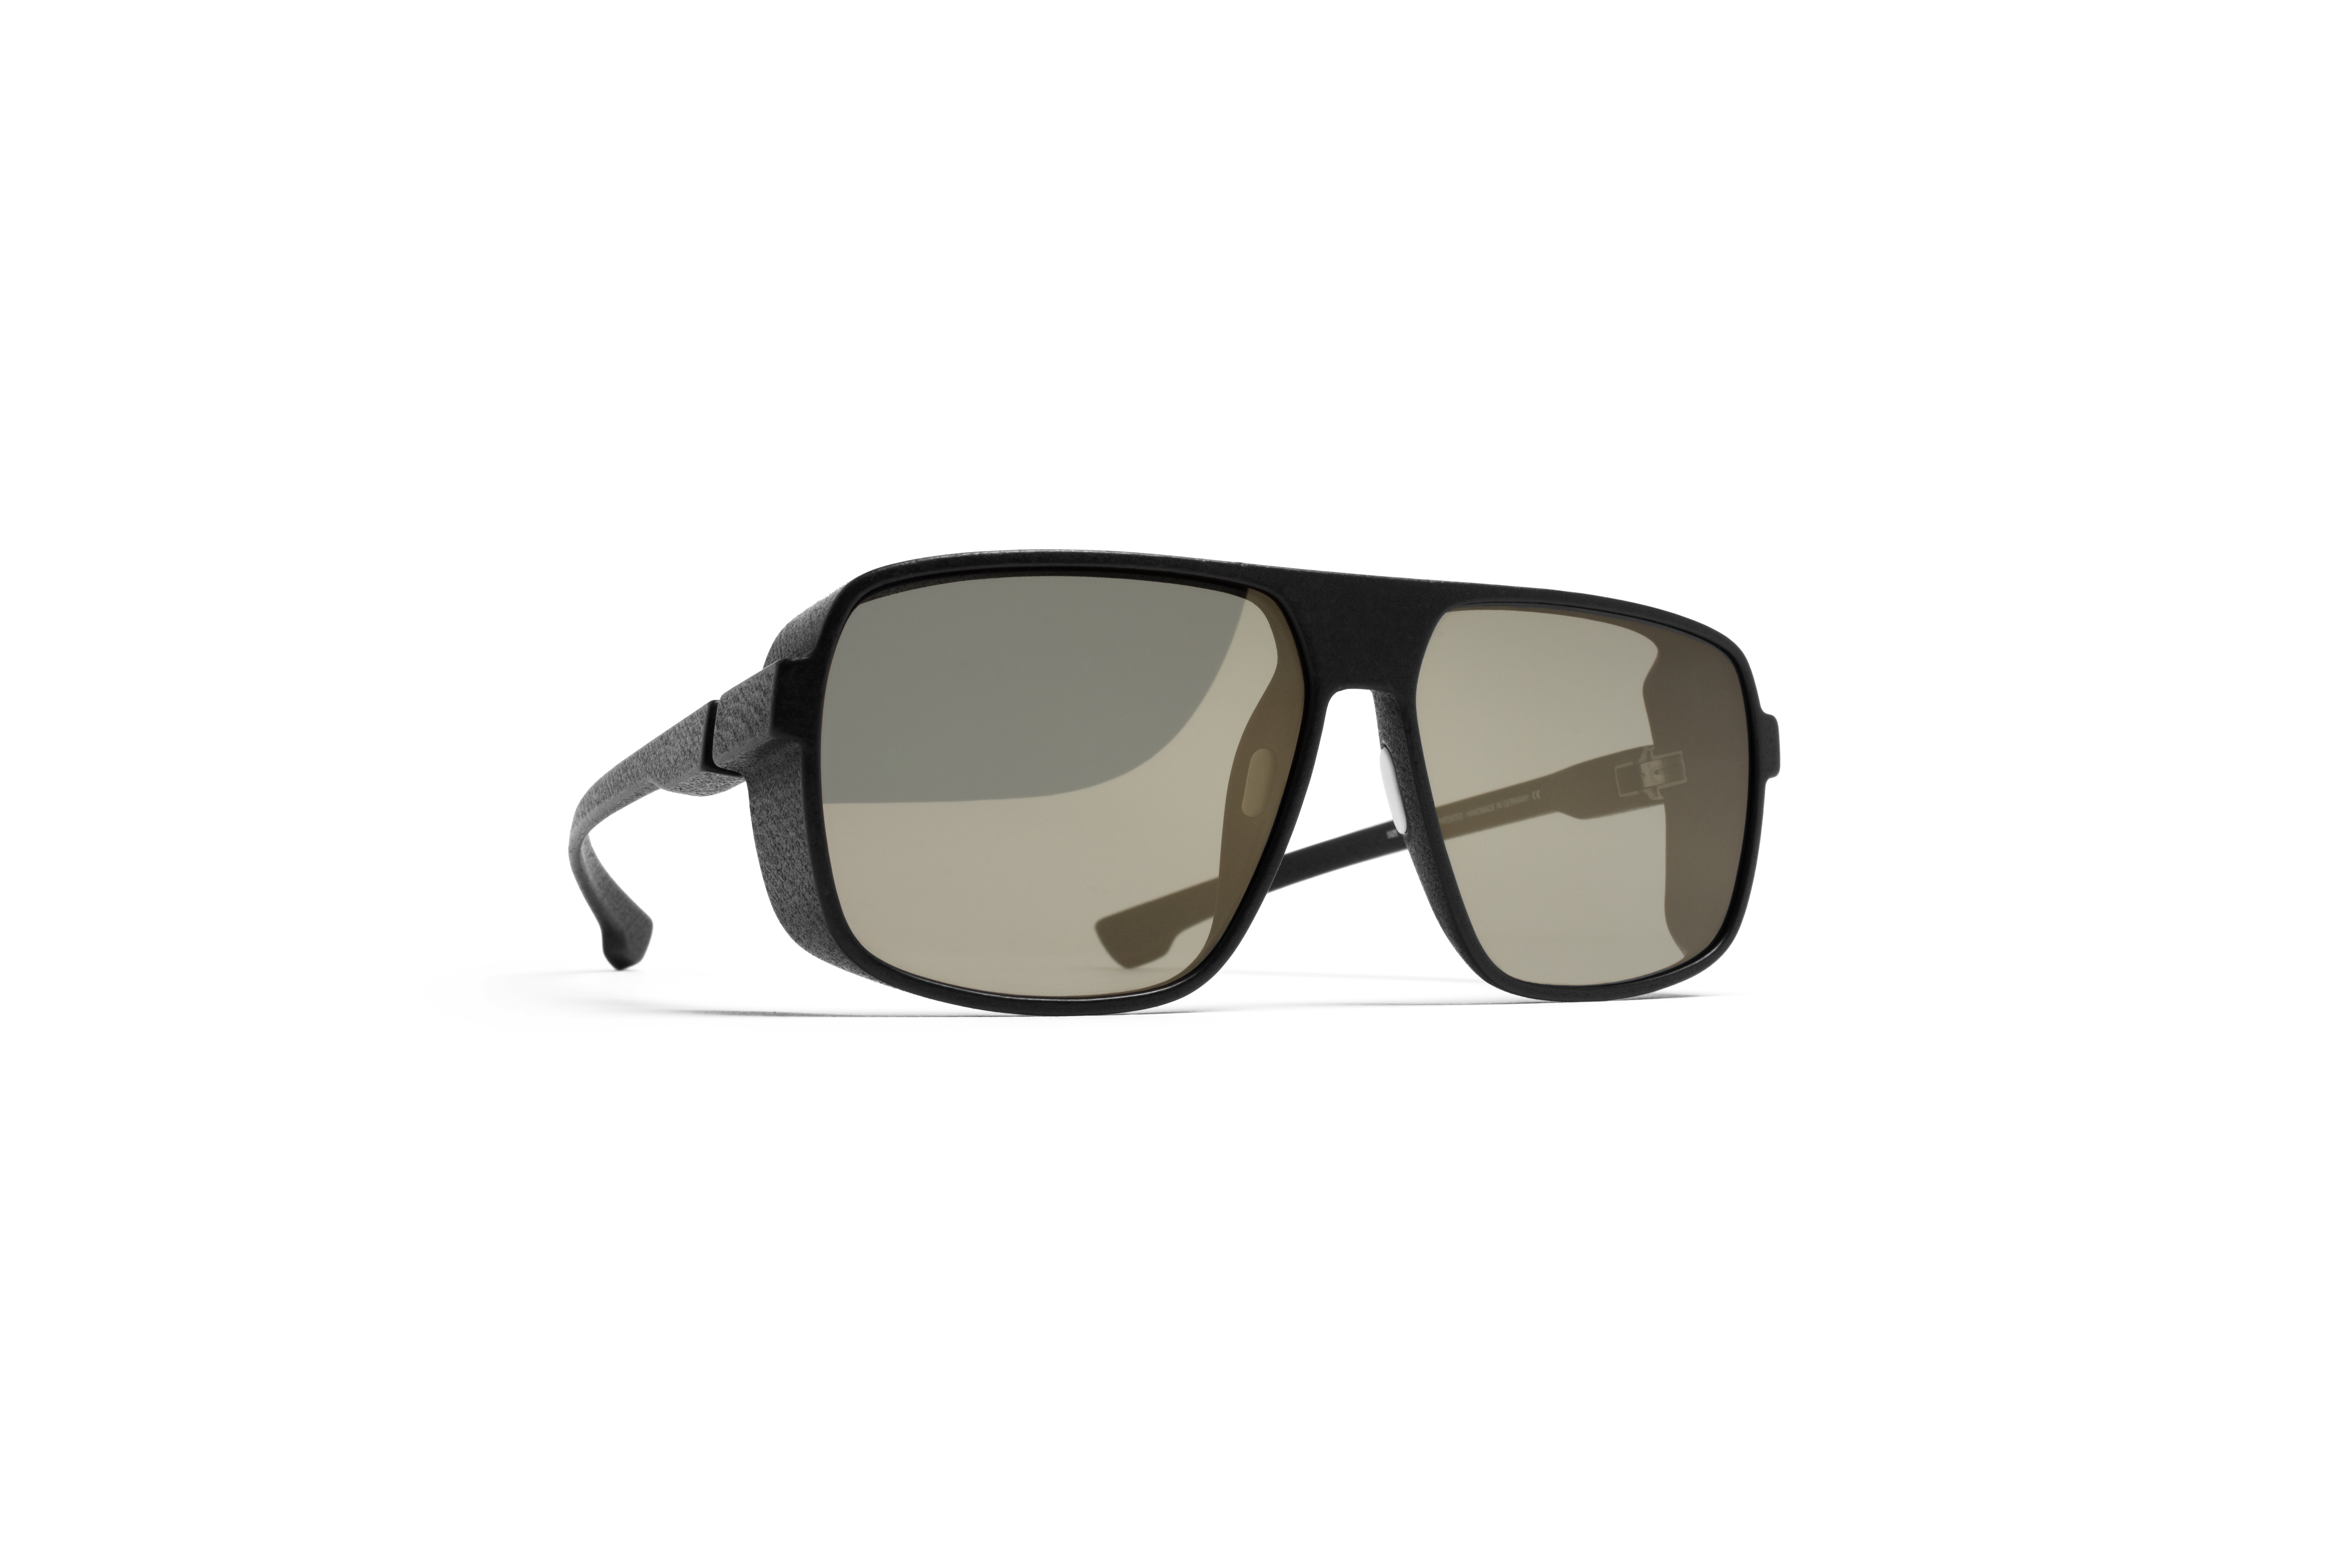 MYKITA Mylon Sun Daggoo Md1 Pitch Black Grey Gunme574ec08ca5a3b